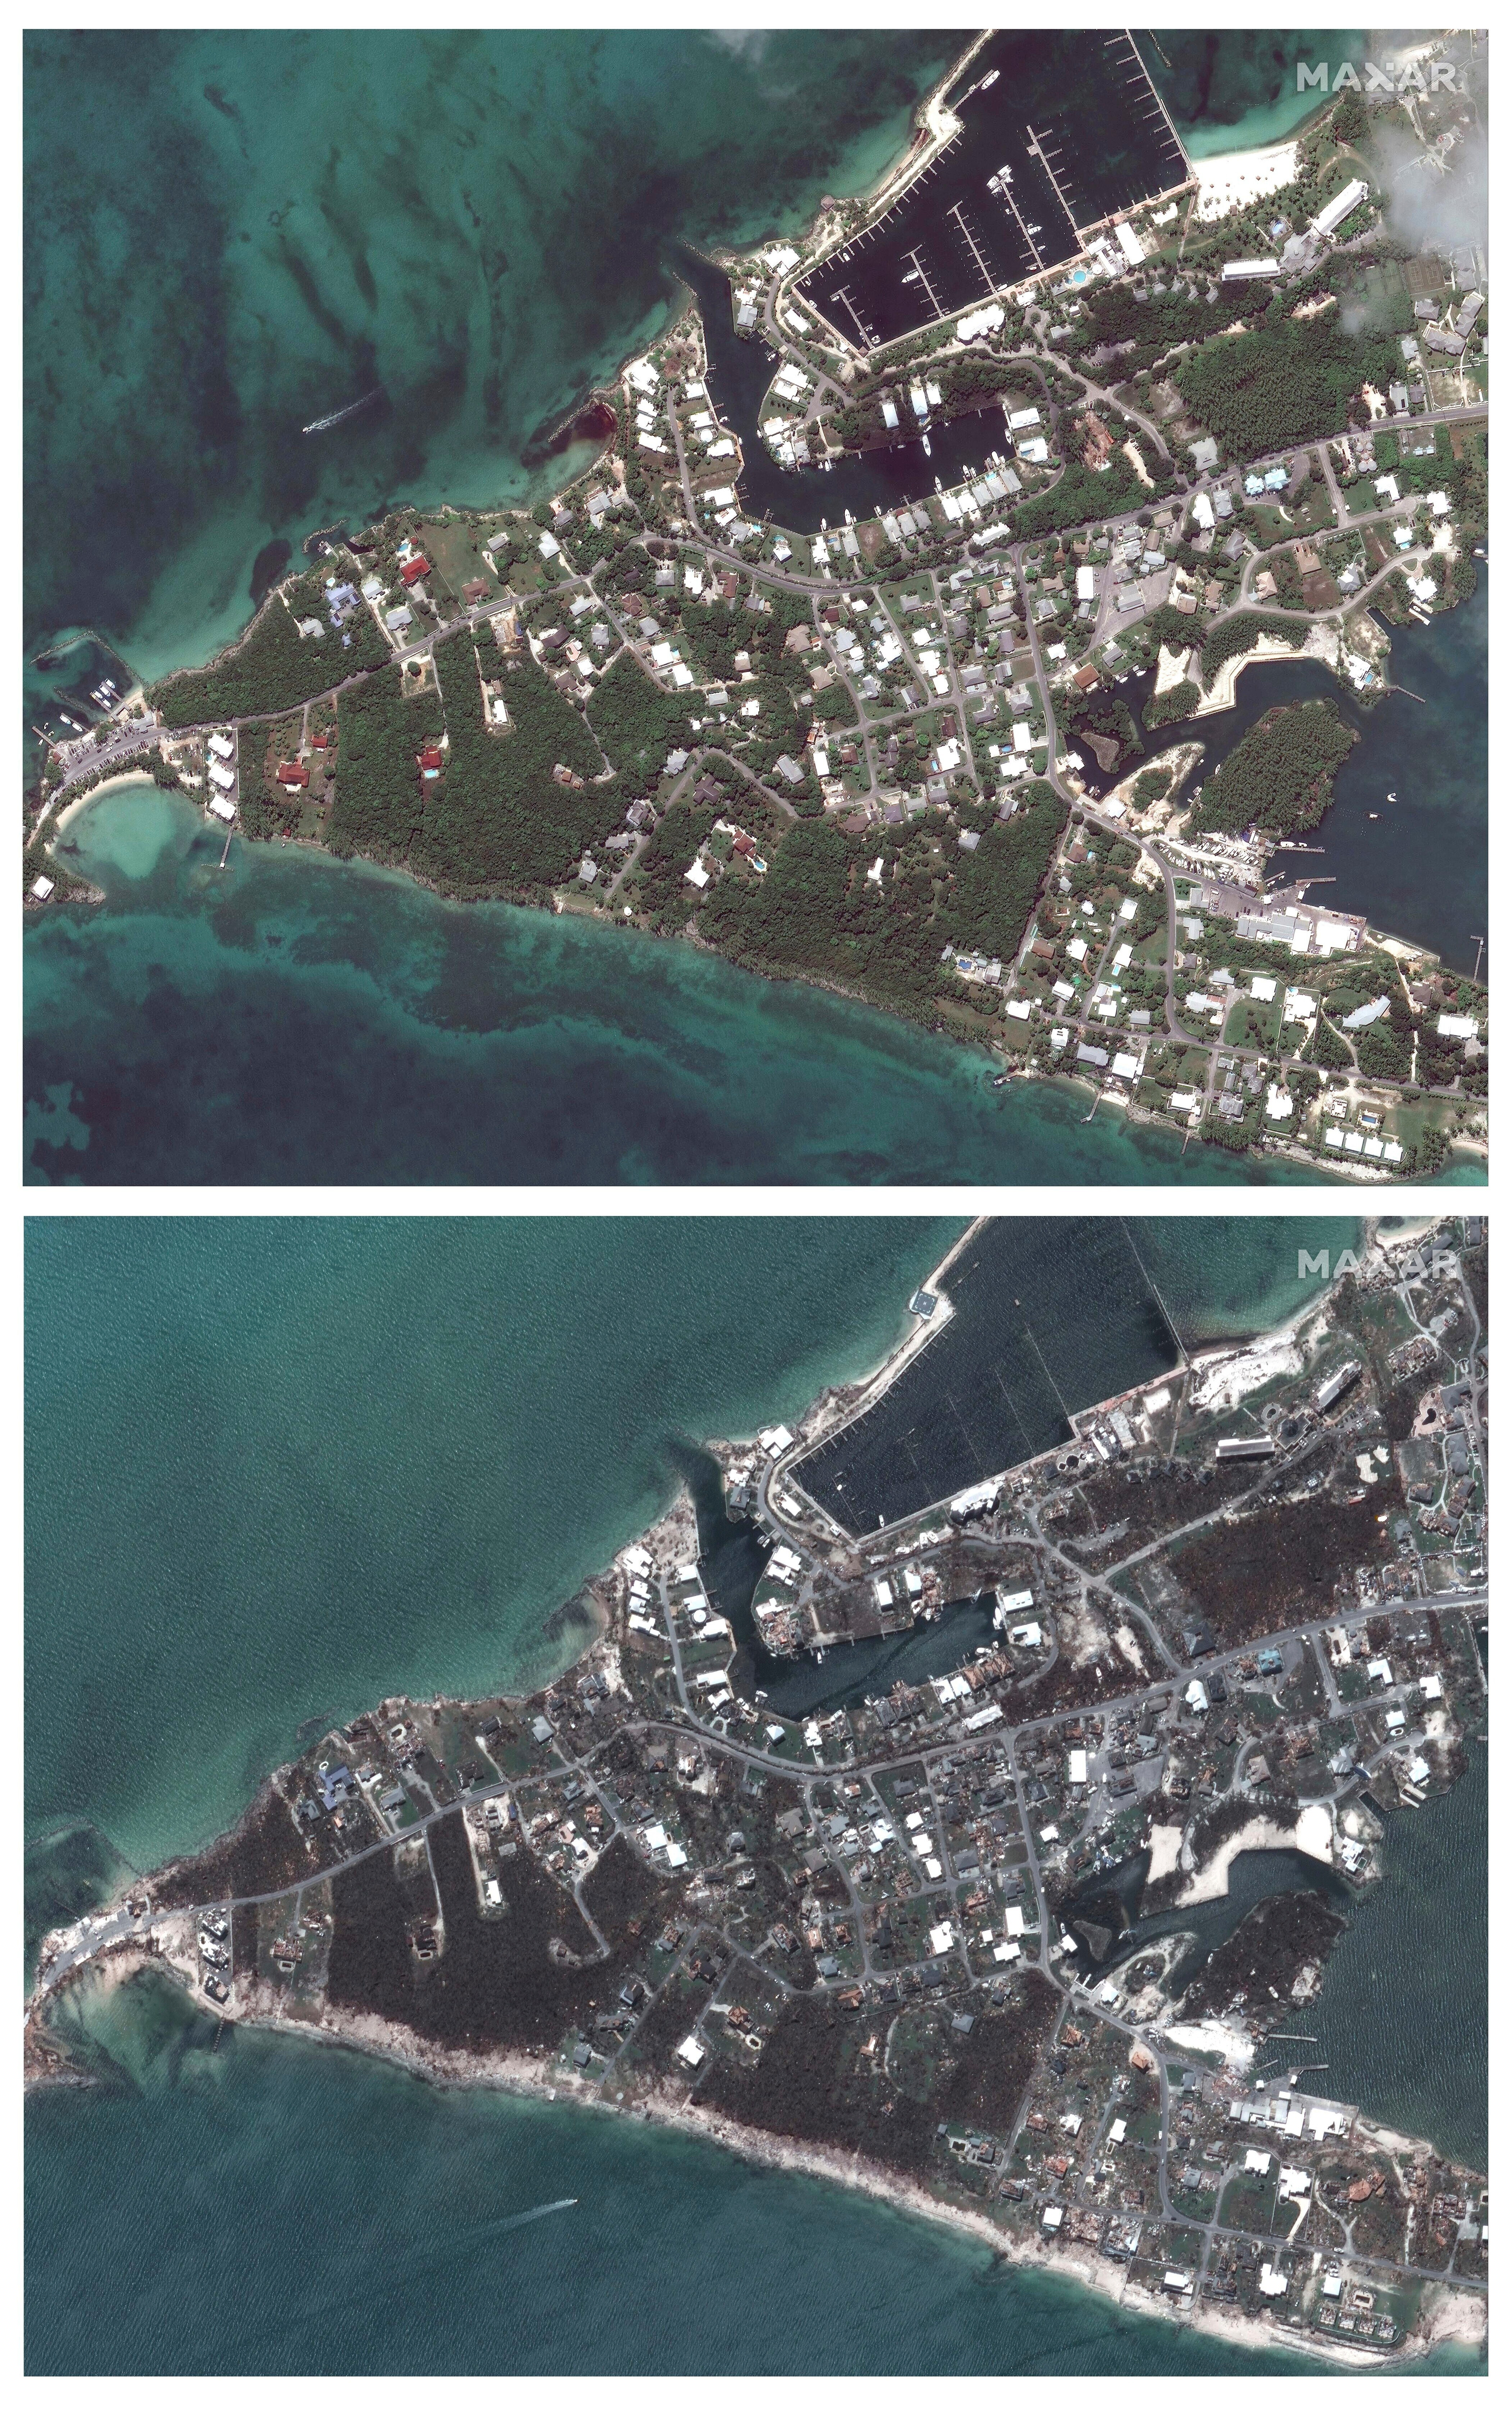 Marsh Harbour in The Bahamas before and after the deadly storm